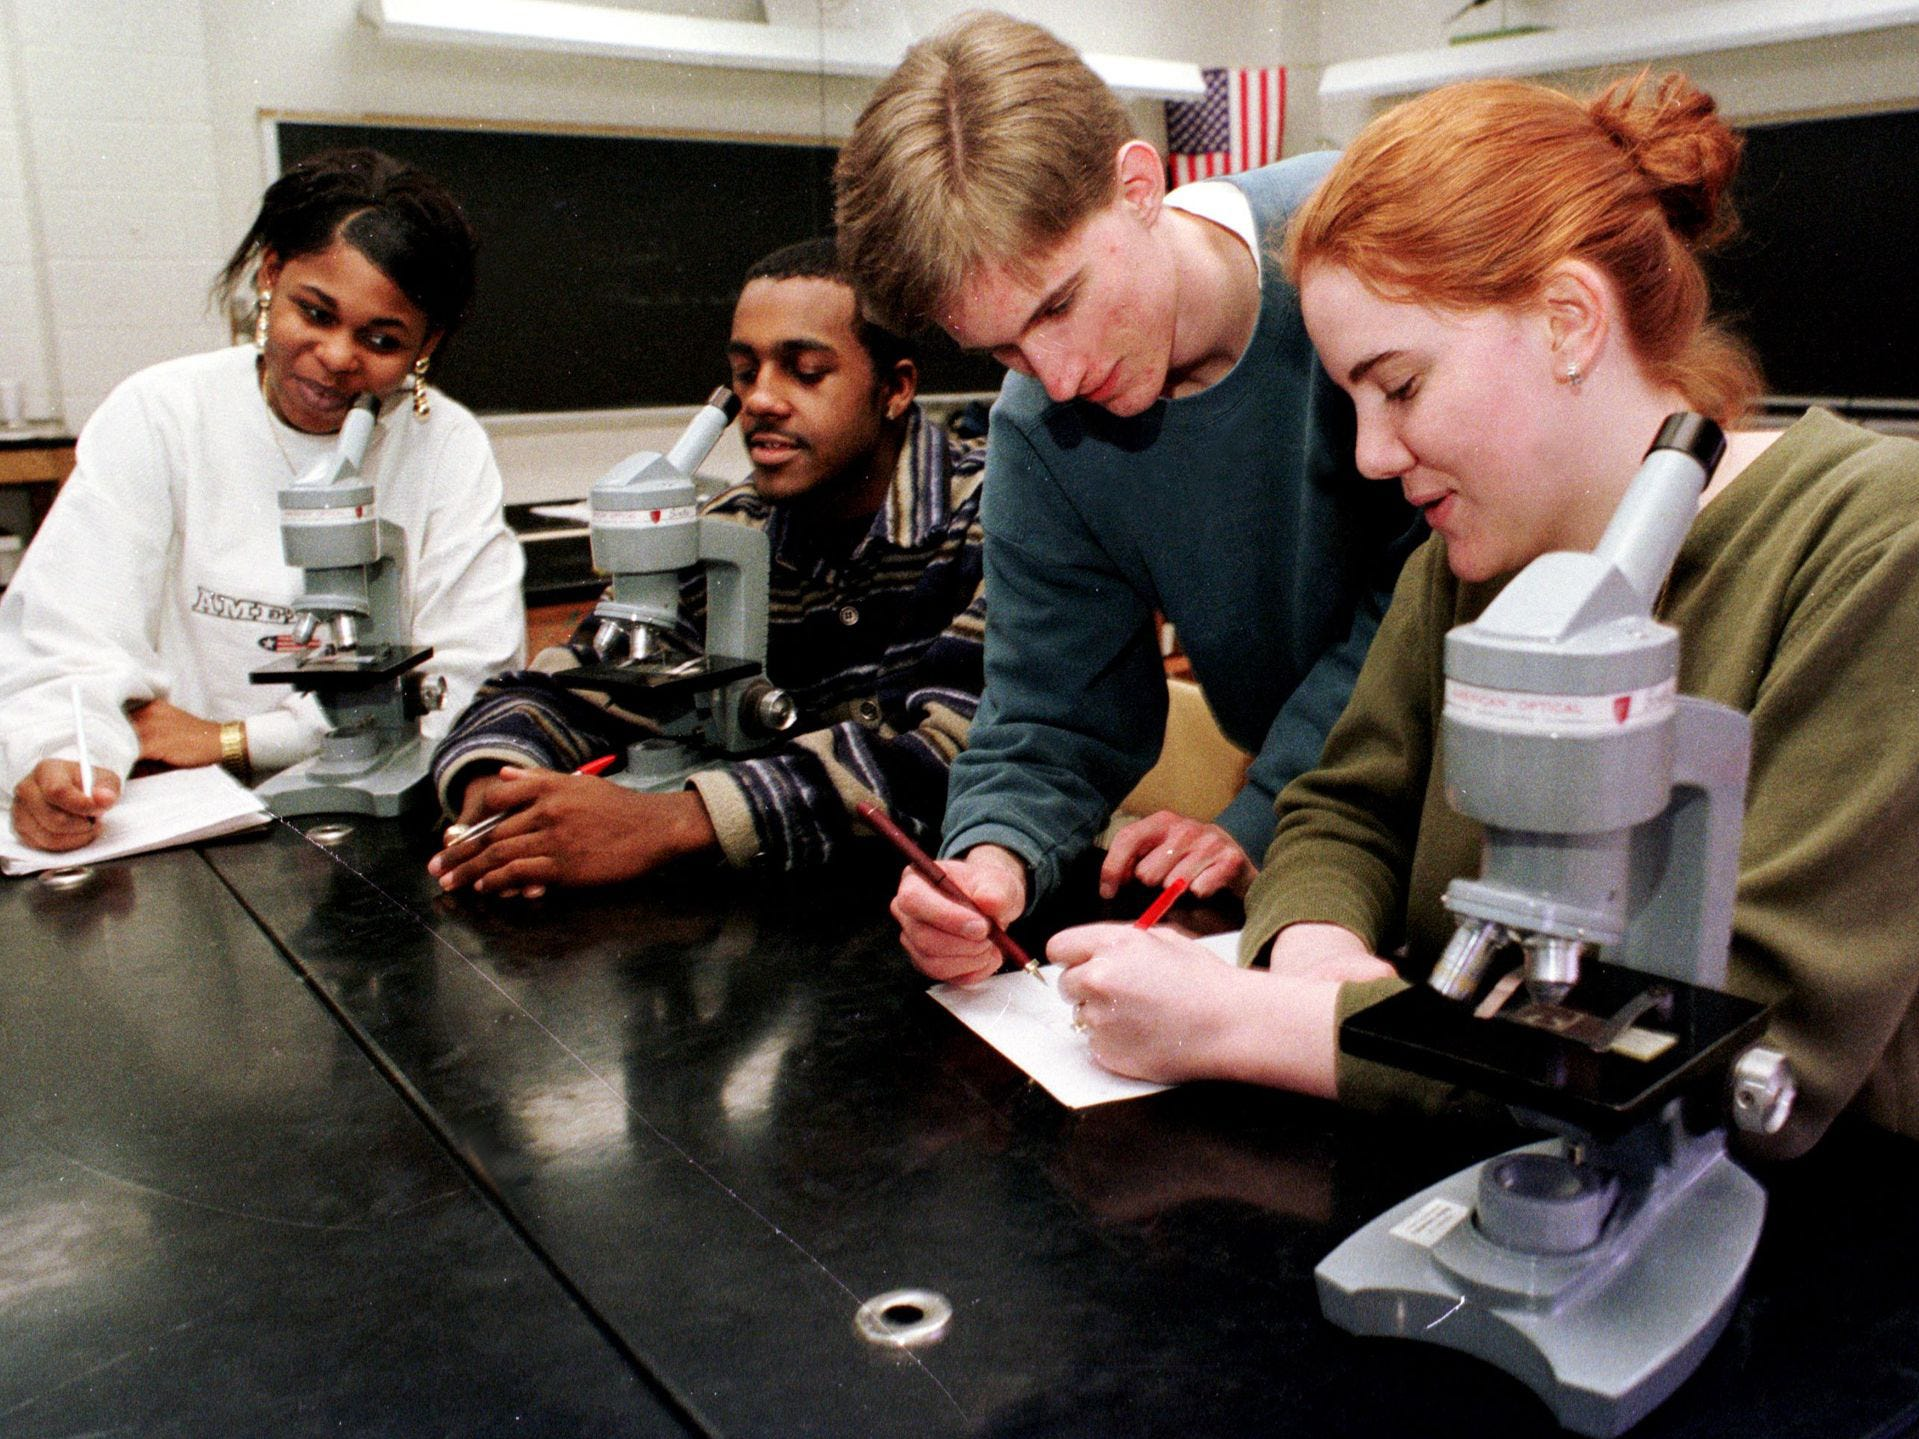 Broad Ripple students enjoy microscopes which were donated by Butler University in 1999. Butler donated 28 microscopes to Broad Ripple Ôs biology program after they replaced them with new scopes for their students. L to R: Juanita Oakley (white shirt); Columbus Kirkland (stripes); Kevin Lantry ; and Katy Vawter.